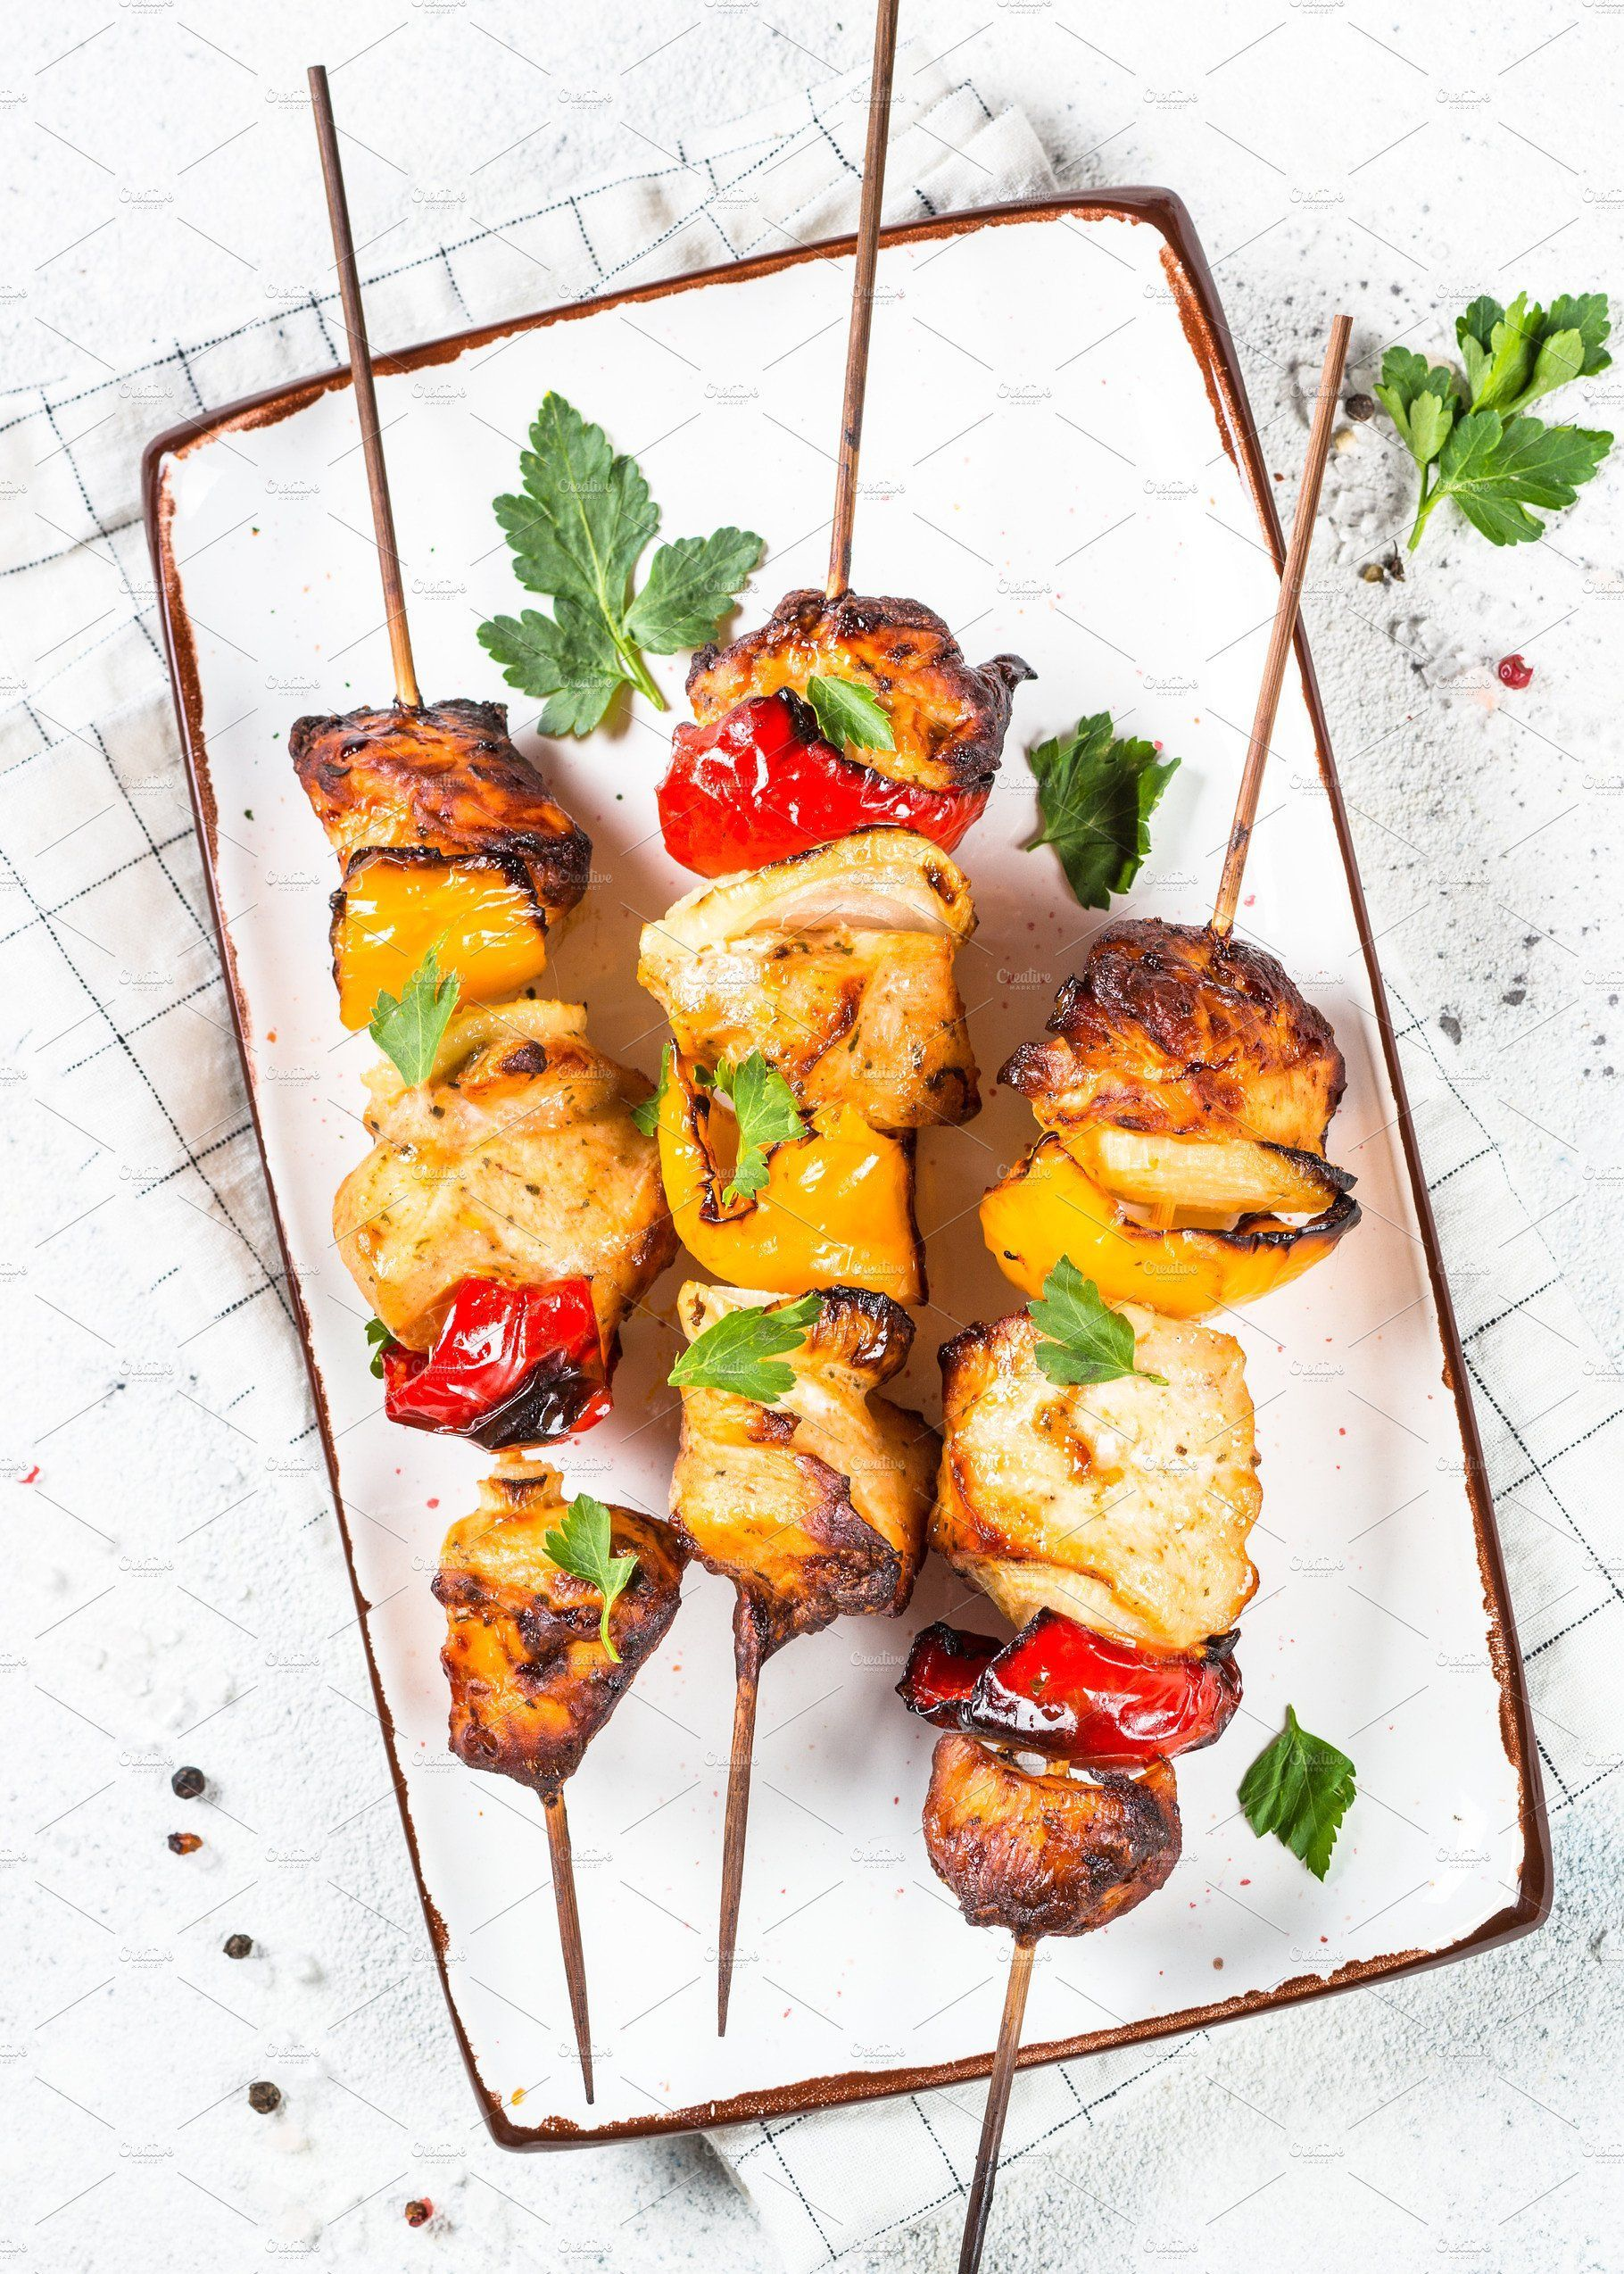 Chicken Kebab Or Shashlik With Vegetables On White Stone Table Barbeque Dish Top View Photography Summer Food Background Cuisine Gourmet Homemade Cooking Lun